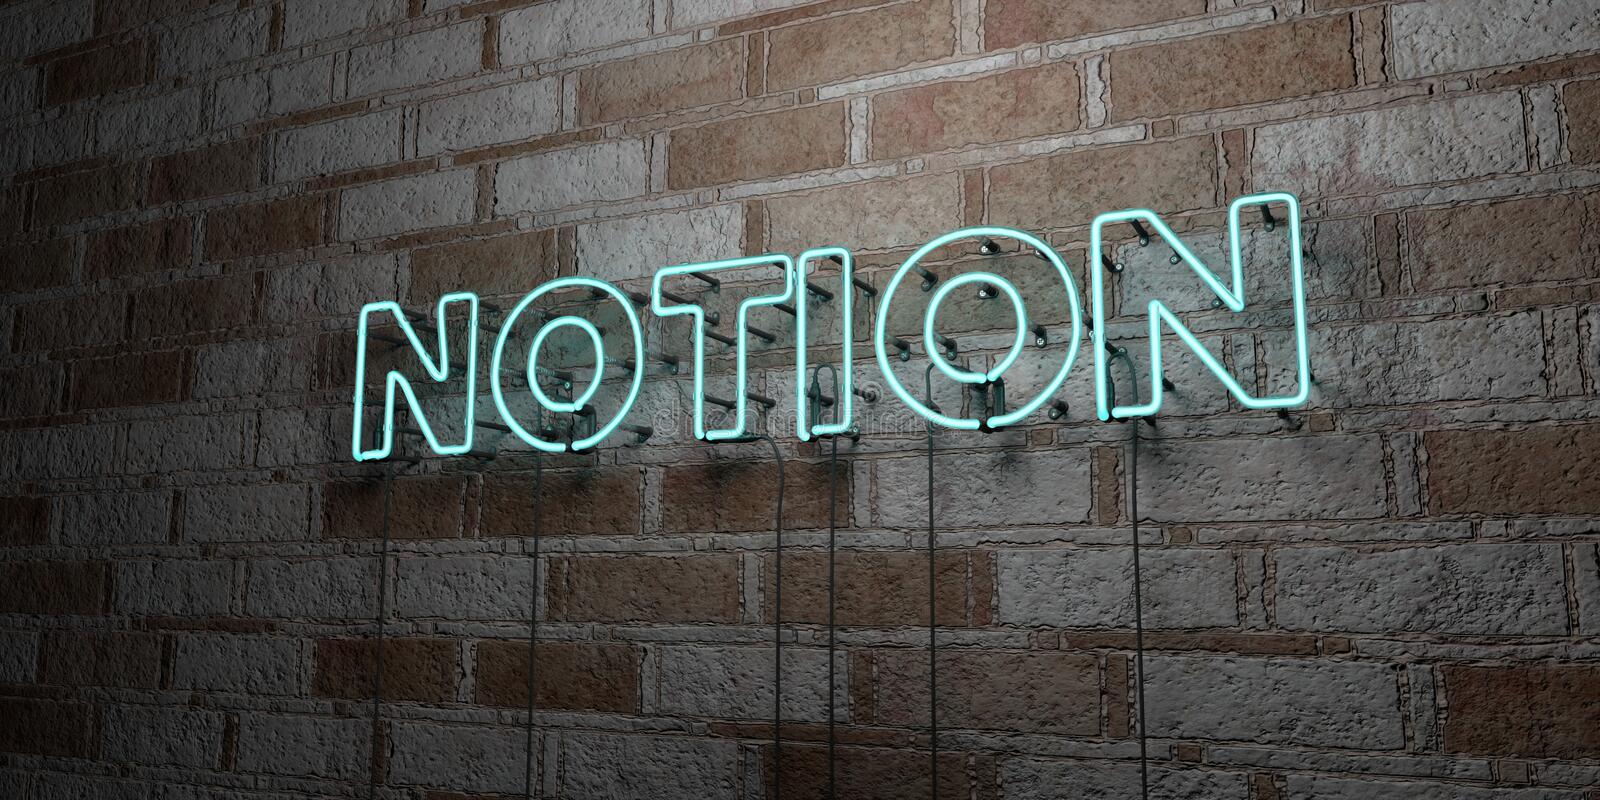 NOTION - Glowing Neon Sign on stonework wall - 3D rendered royalty free stock illustration. Can be used for online banner ads and direct mailers vector illustration